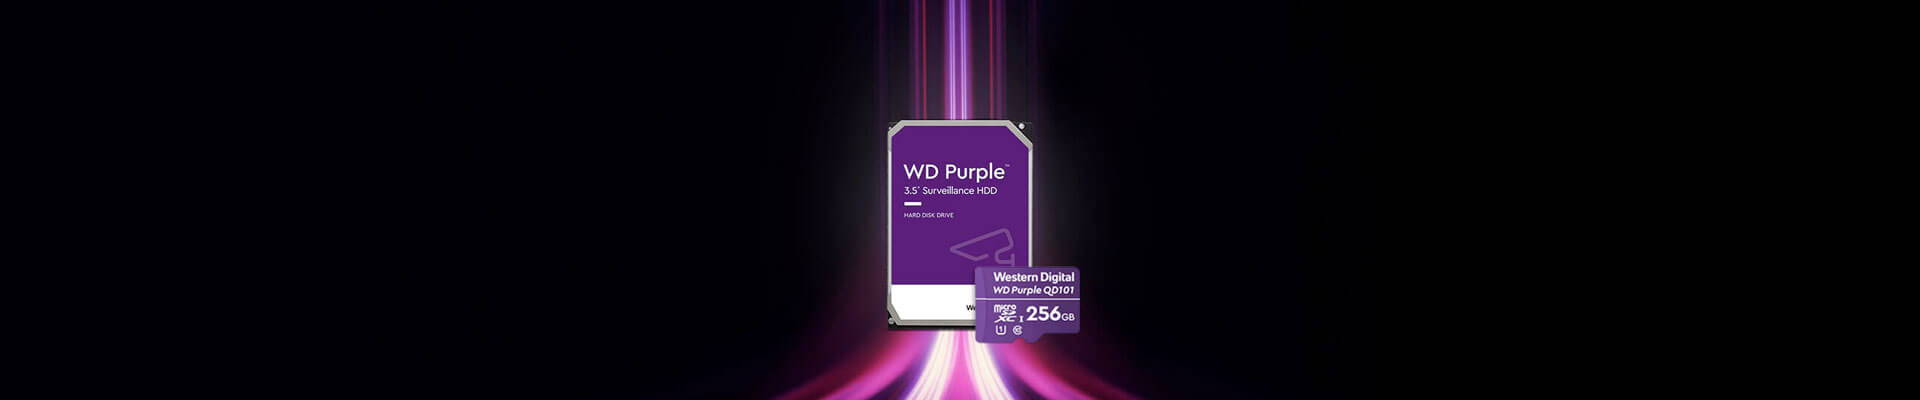 WD Security Grade Hard Drives and MicroSD cards Banner